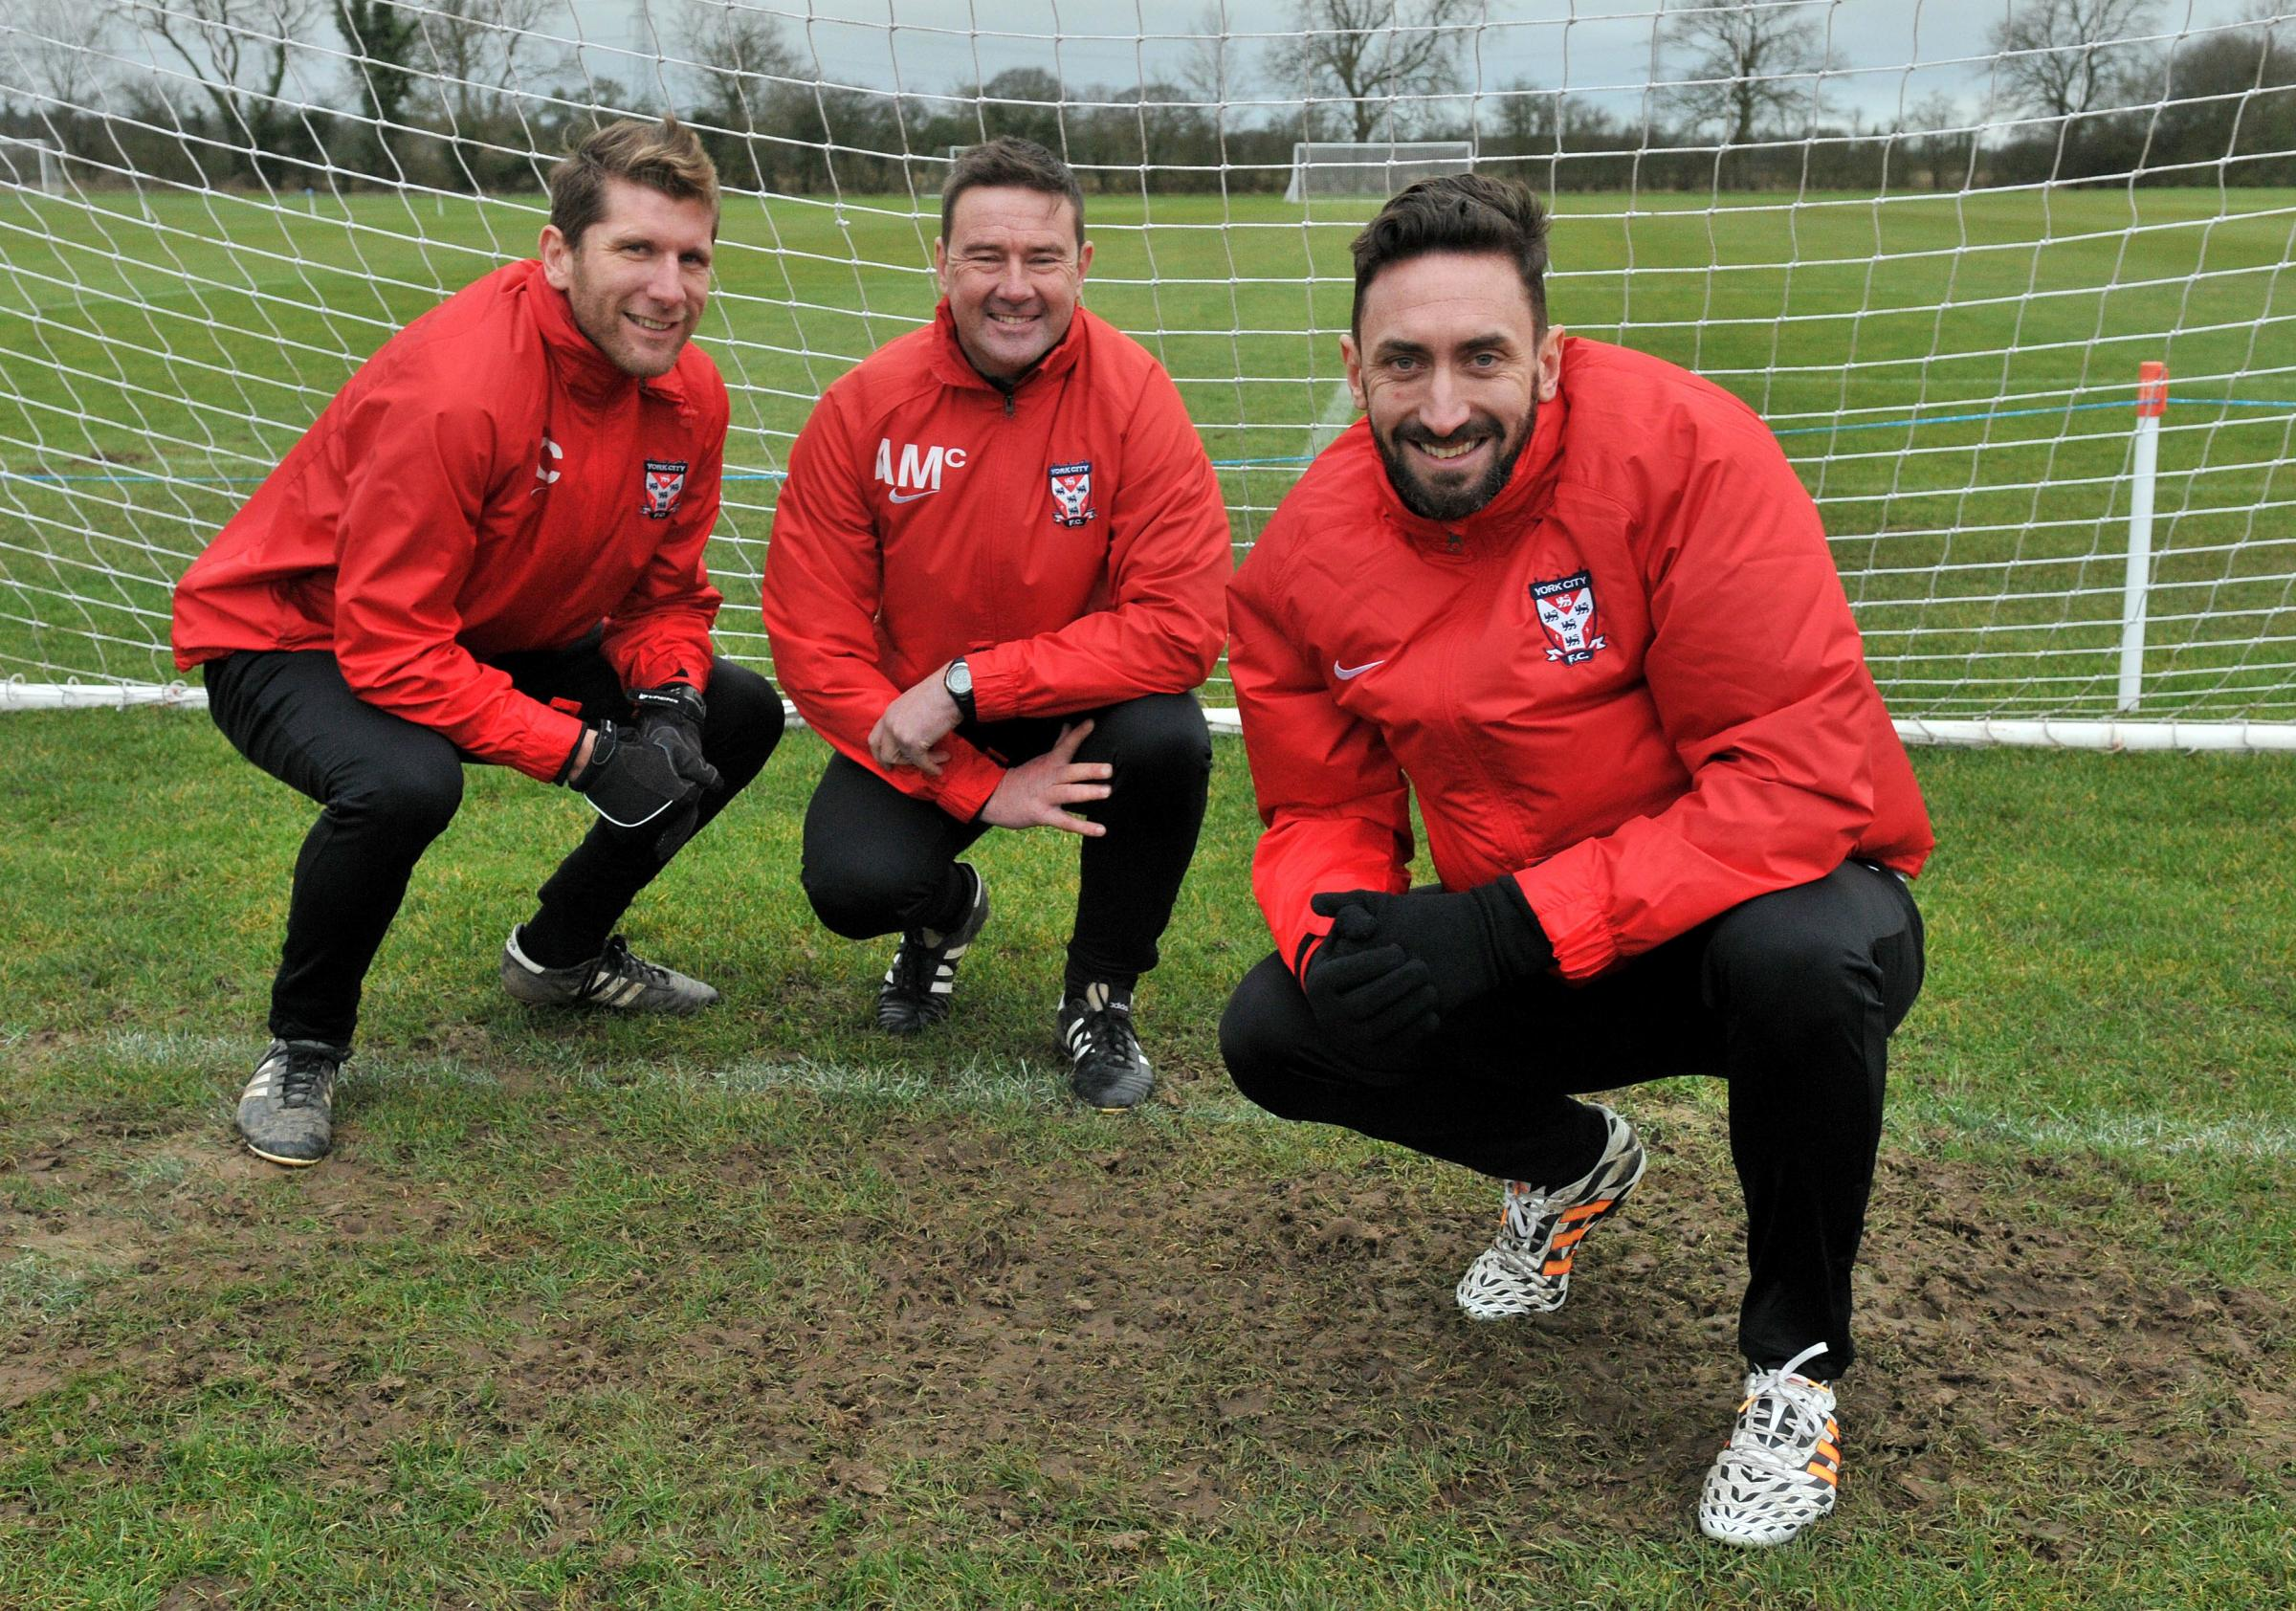 Jonathan Greening, right, with Richard Cresswell, far left, and academy manager Andy McMillan